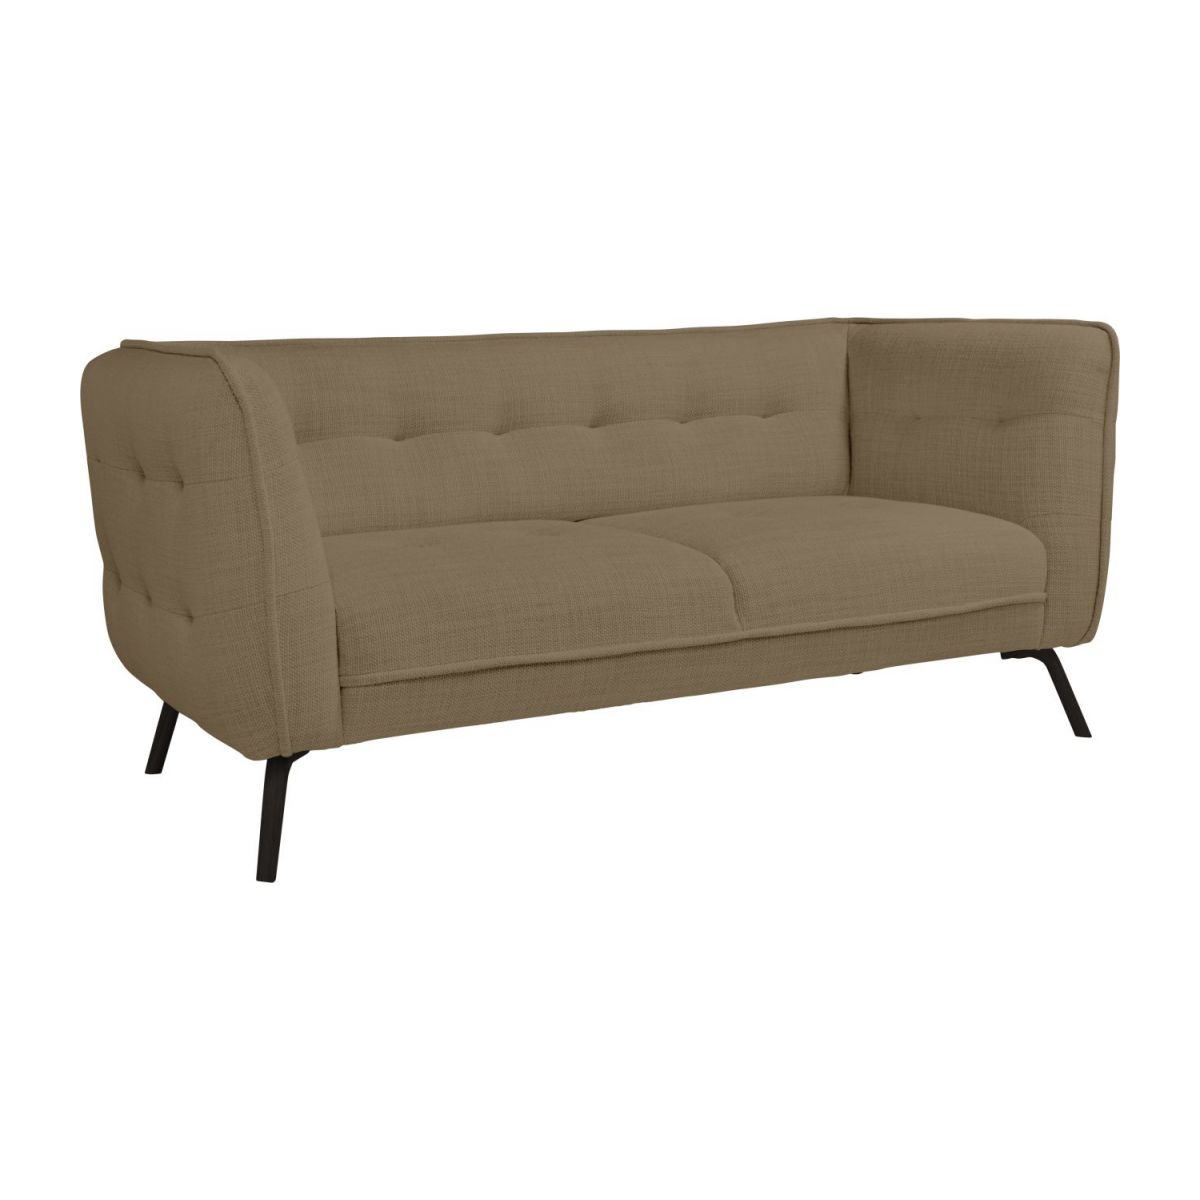 2 seater sofa in Fasoli fabric, jatoba brown and dark legs n°1